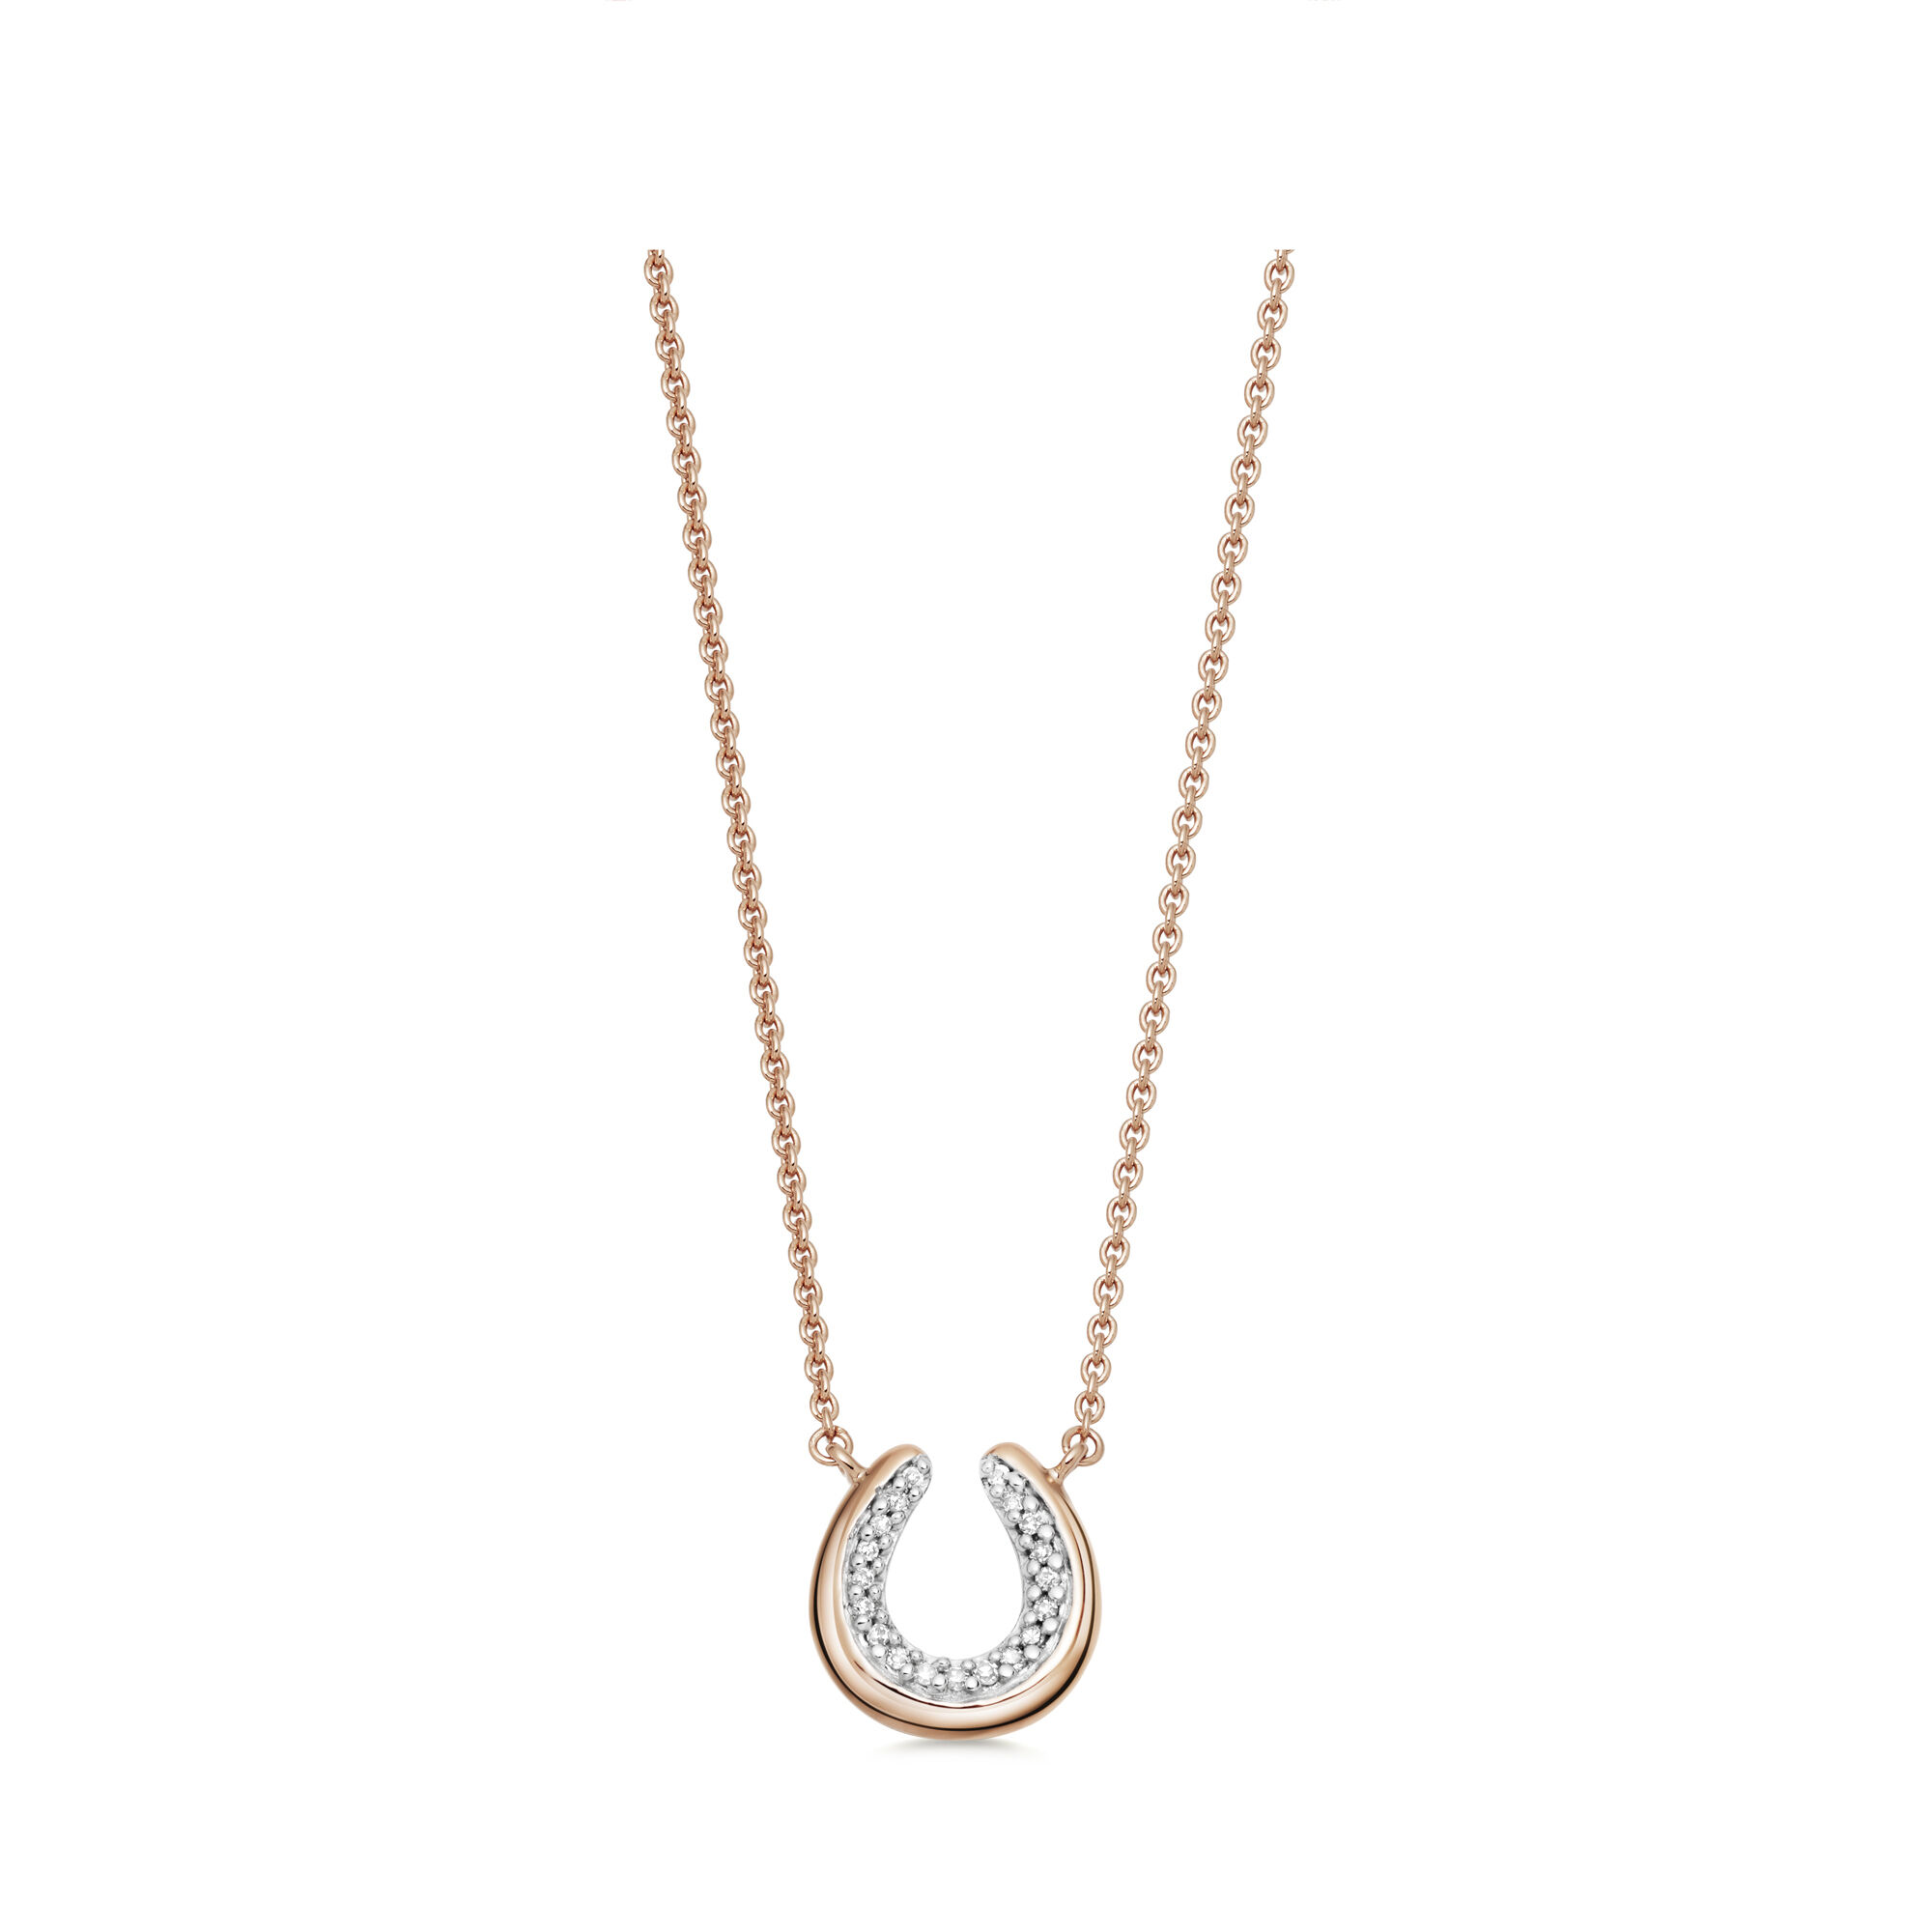 sterling pave filled with necklace choker silver collections rose gold product bead horse shoe diamond horseshoe oxidized